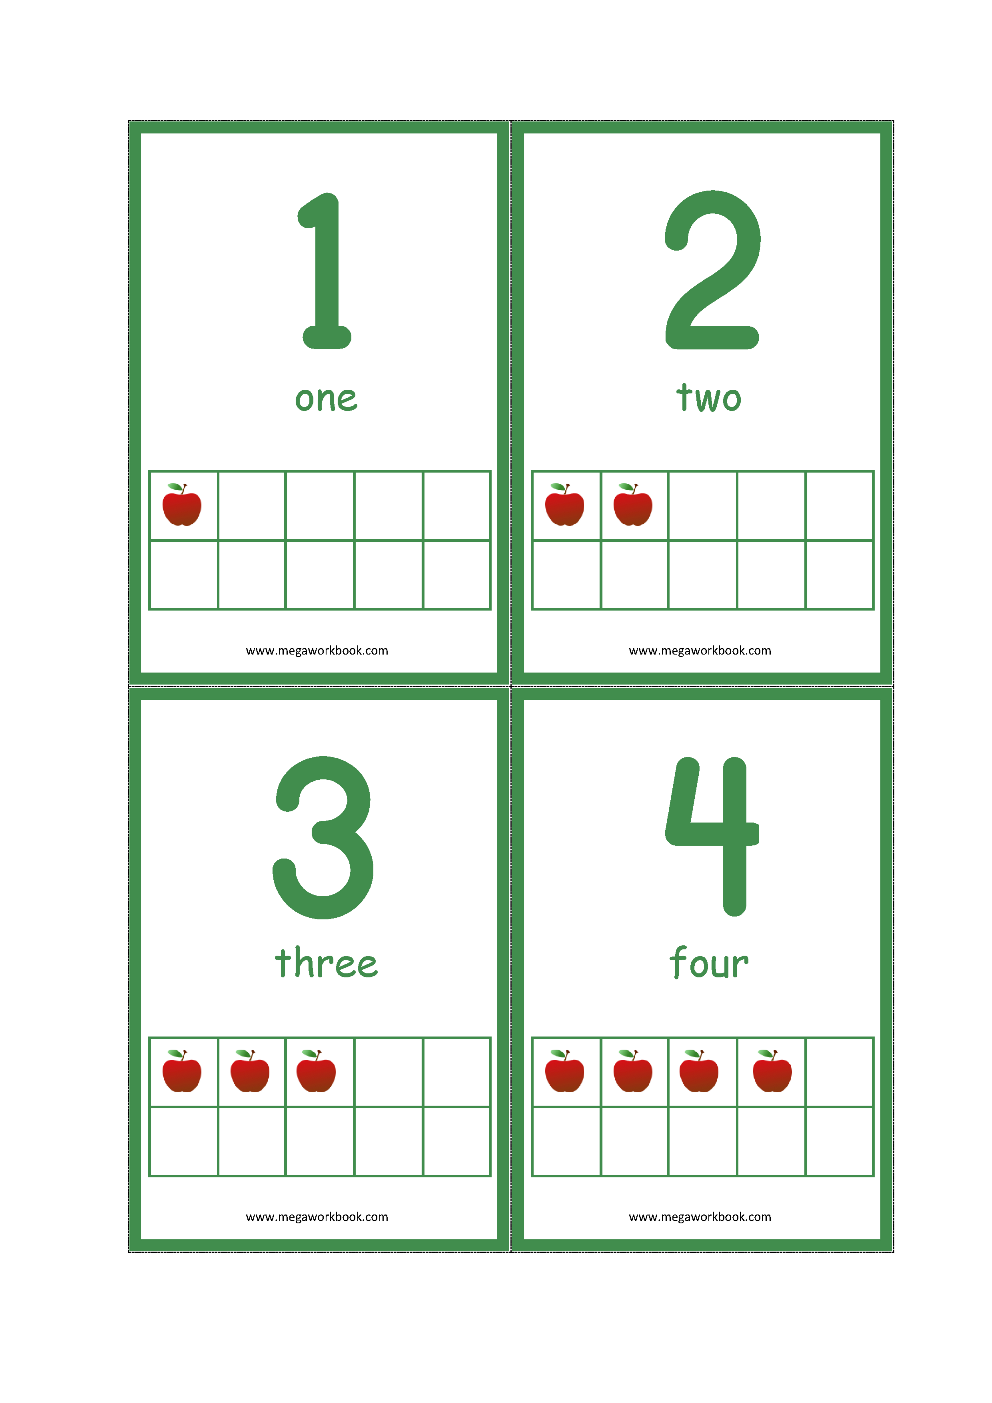 graphic about Printable Ten Frame called 10 Body Printables - 10 Body Math Counting Video game 1-10